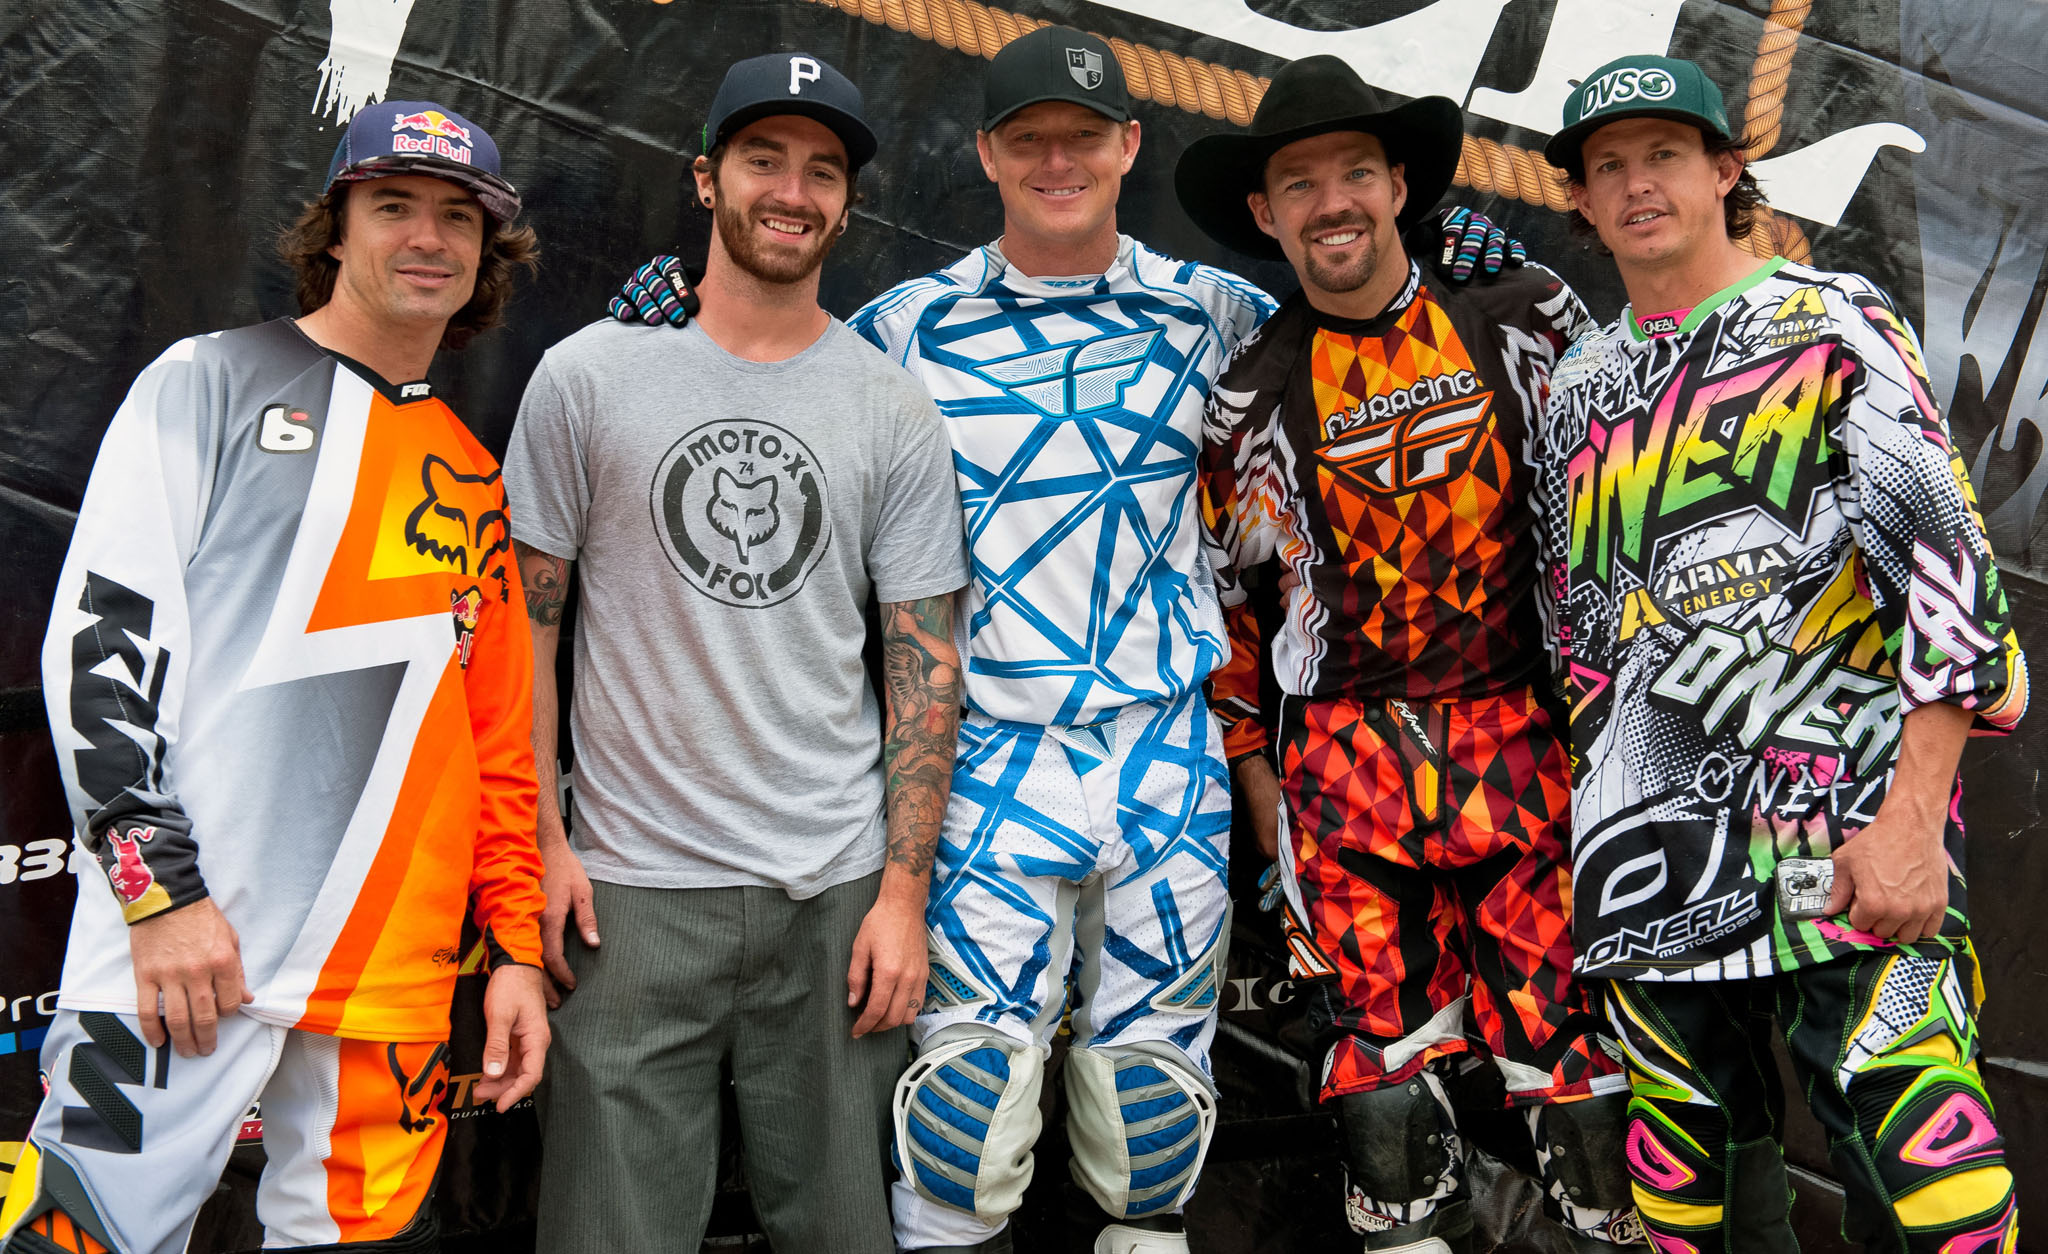 Ronnie Renner, Adam Jones, Cody Elkins, Kenny Bartram, Matt Buyten,